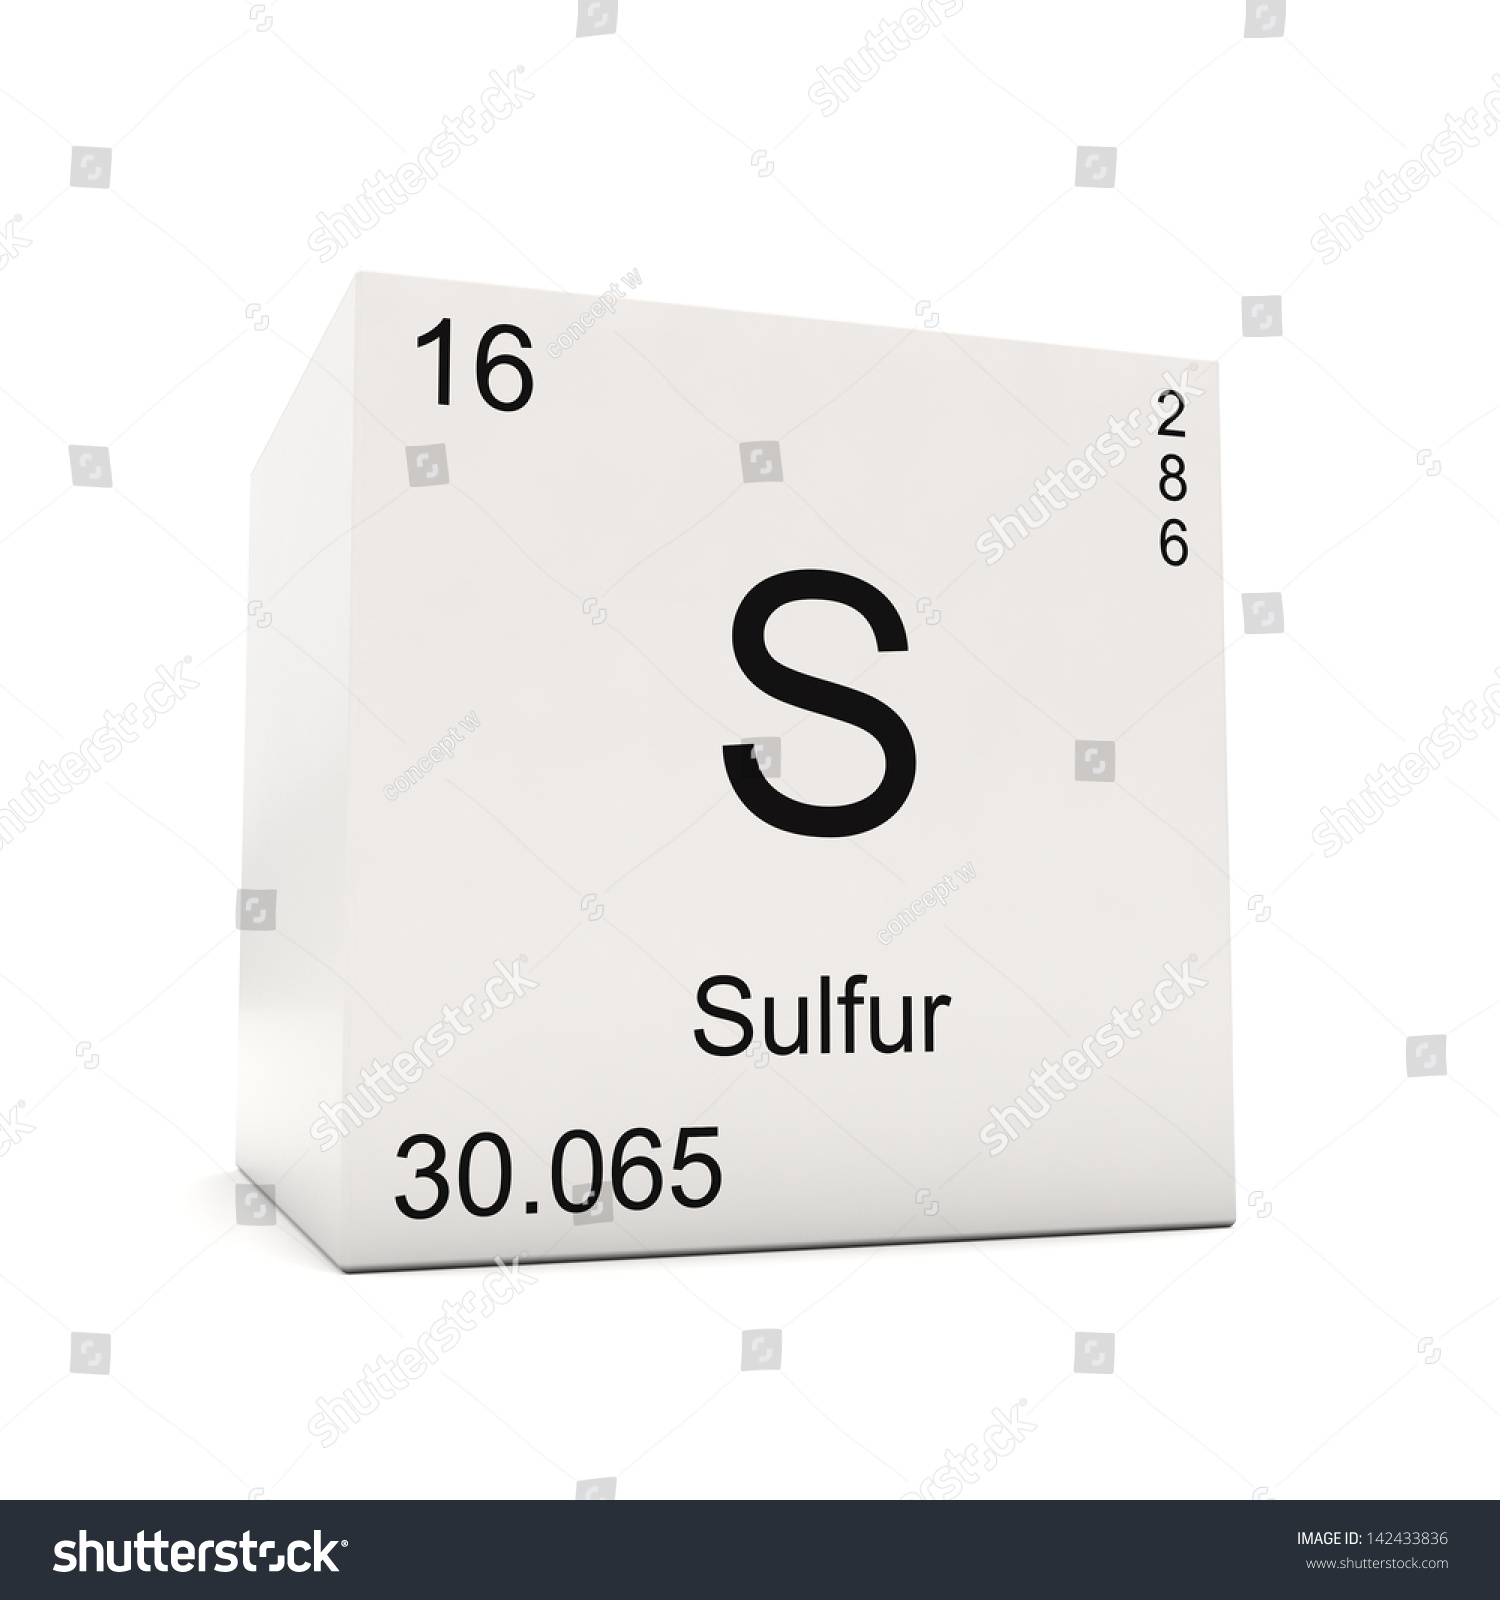 Cube sulfur element periodic table isolated stock illustration cube of sulfur element of the periodic table isolated on white background gamestrikefo Image collections